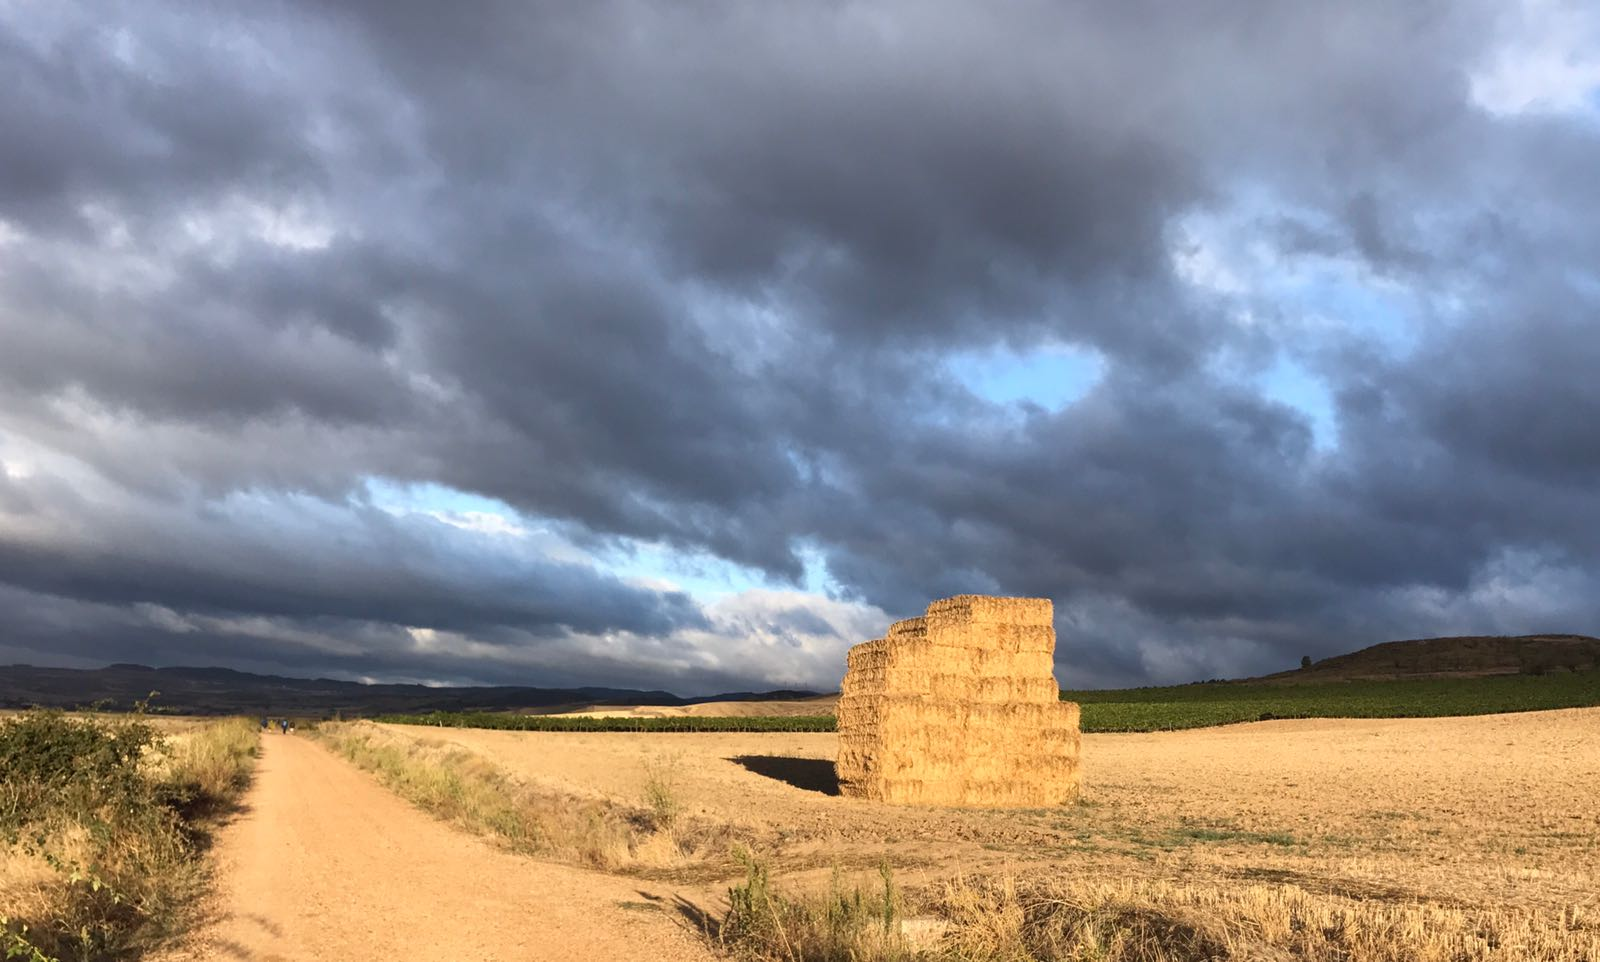 A stack of hay bales, lit yellow by the sun under a dark sky